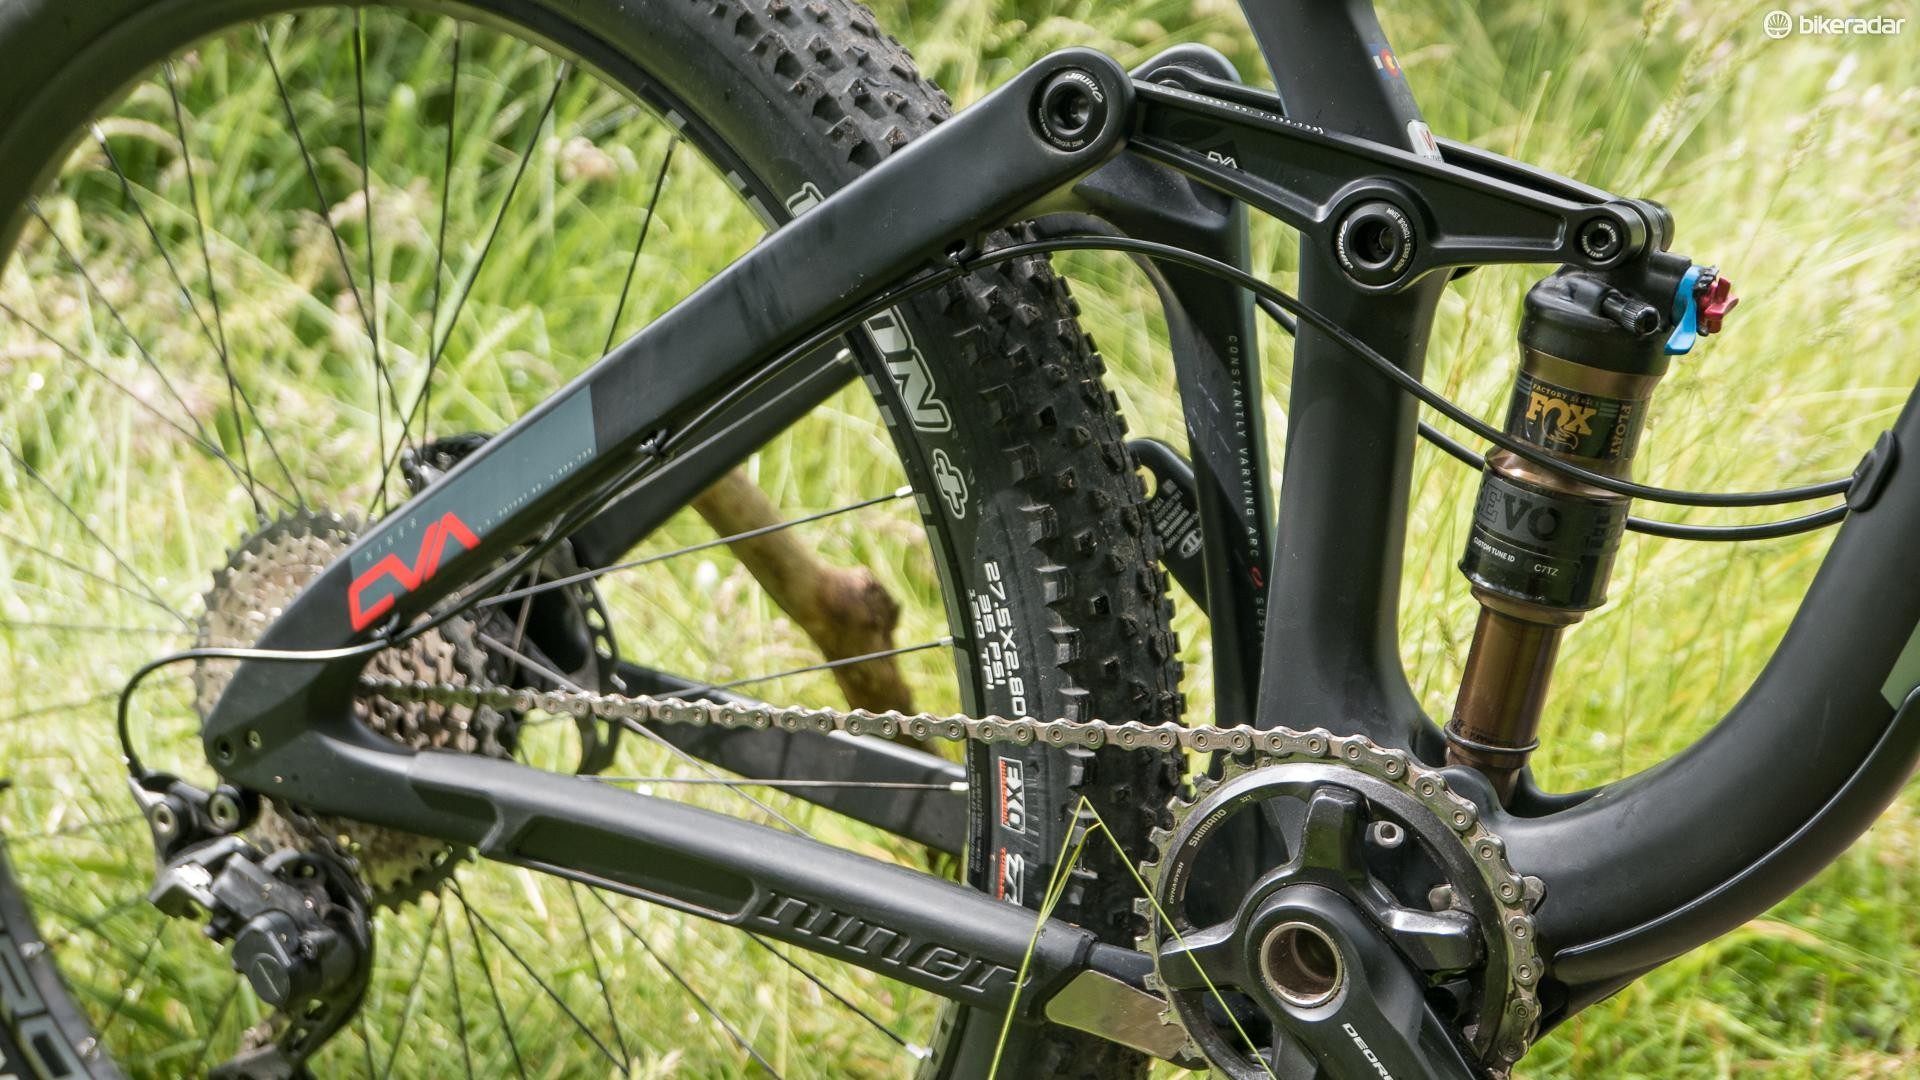 A serious chunky carbon fiber rear triangle gets boost spacing for extra stiffness